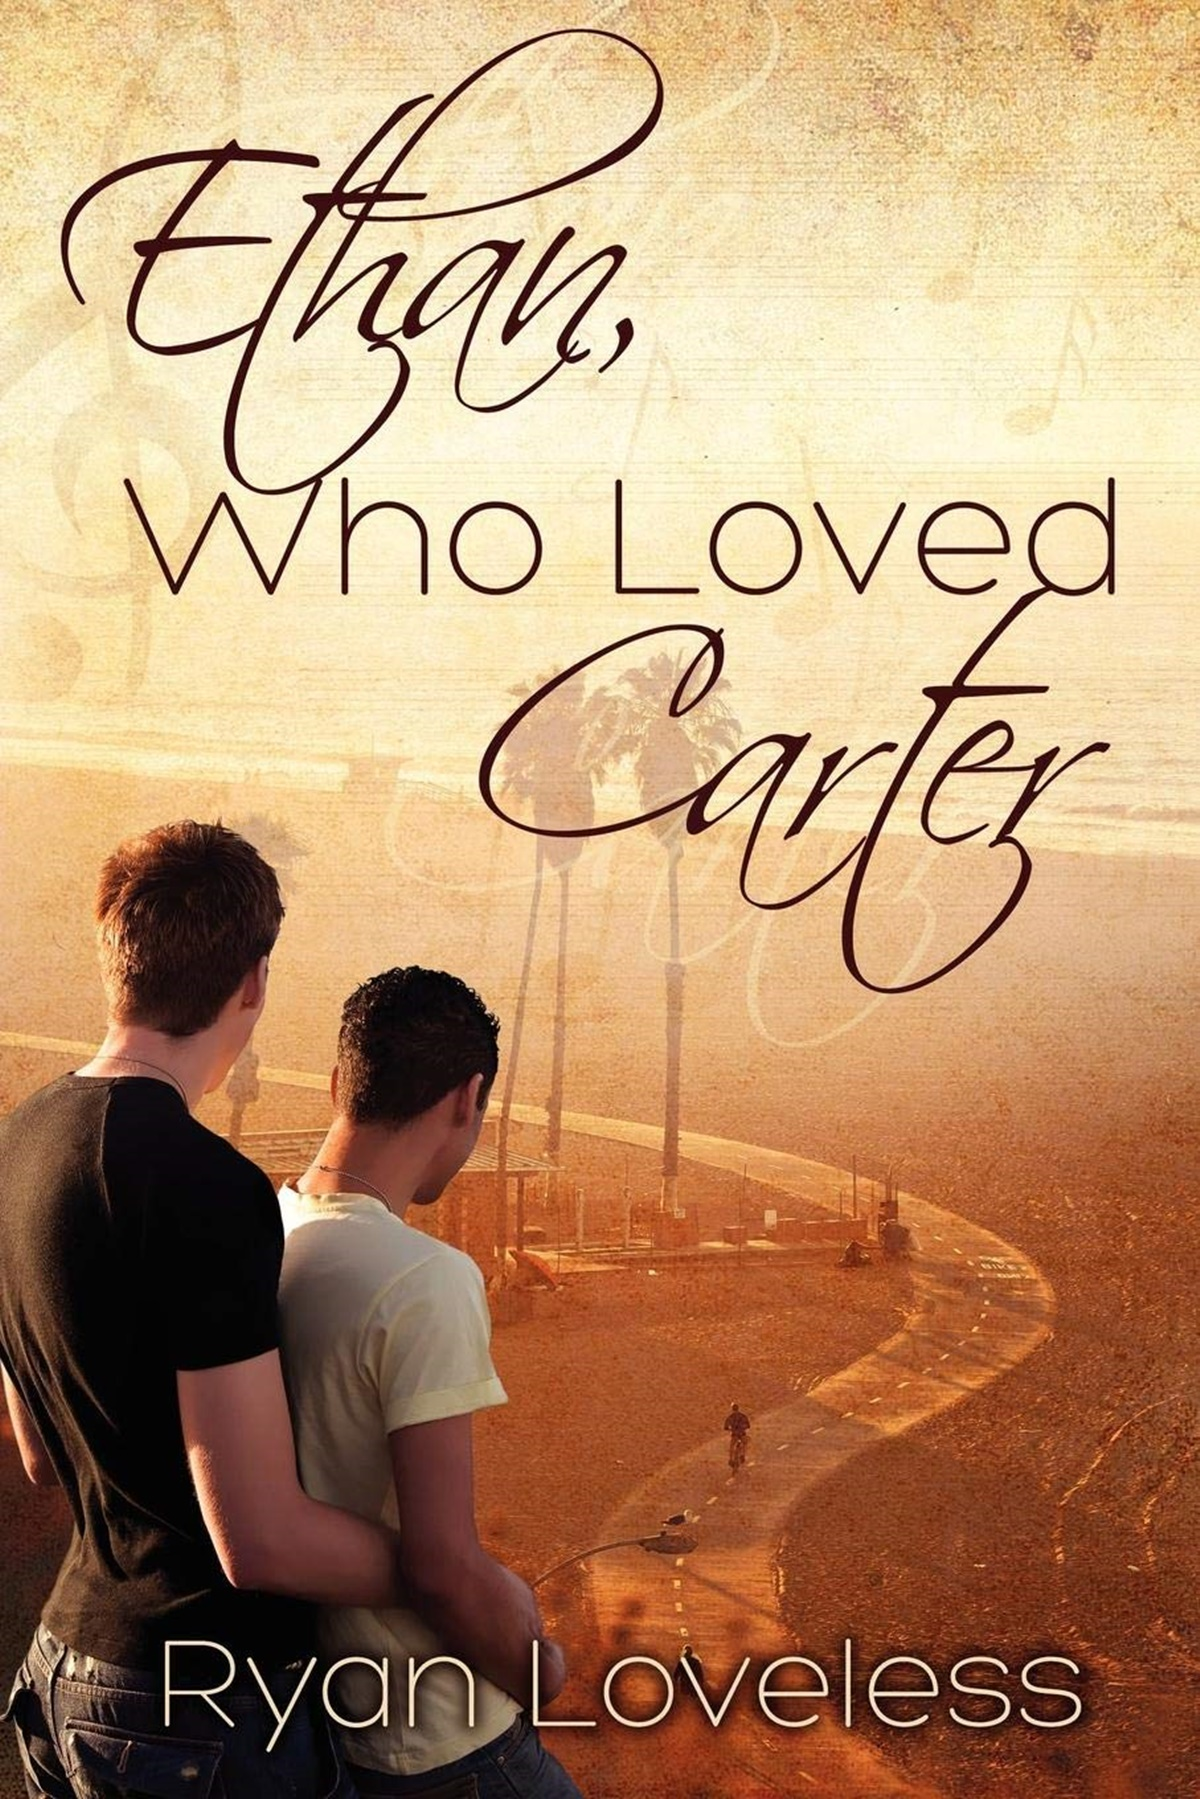 Jewish Romance Novels, cover of Ethan, Who Loved Carter by Ryan Loveless, books